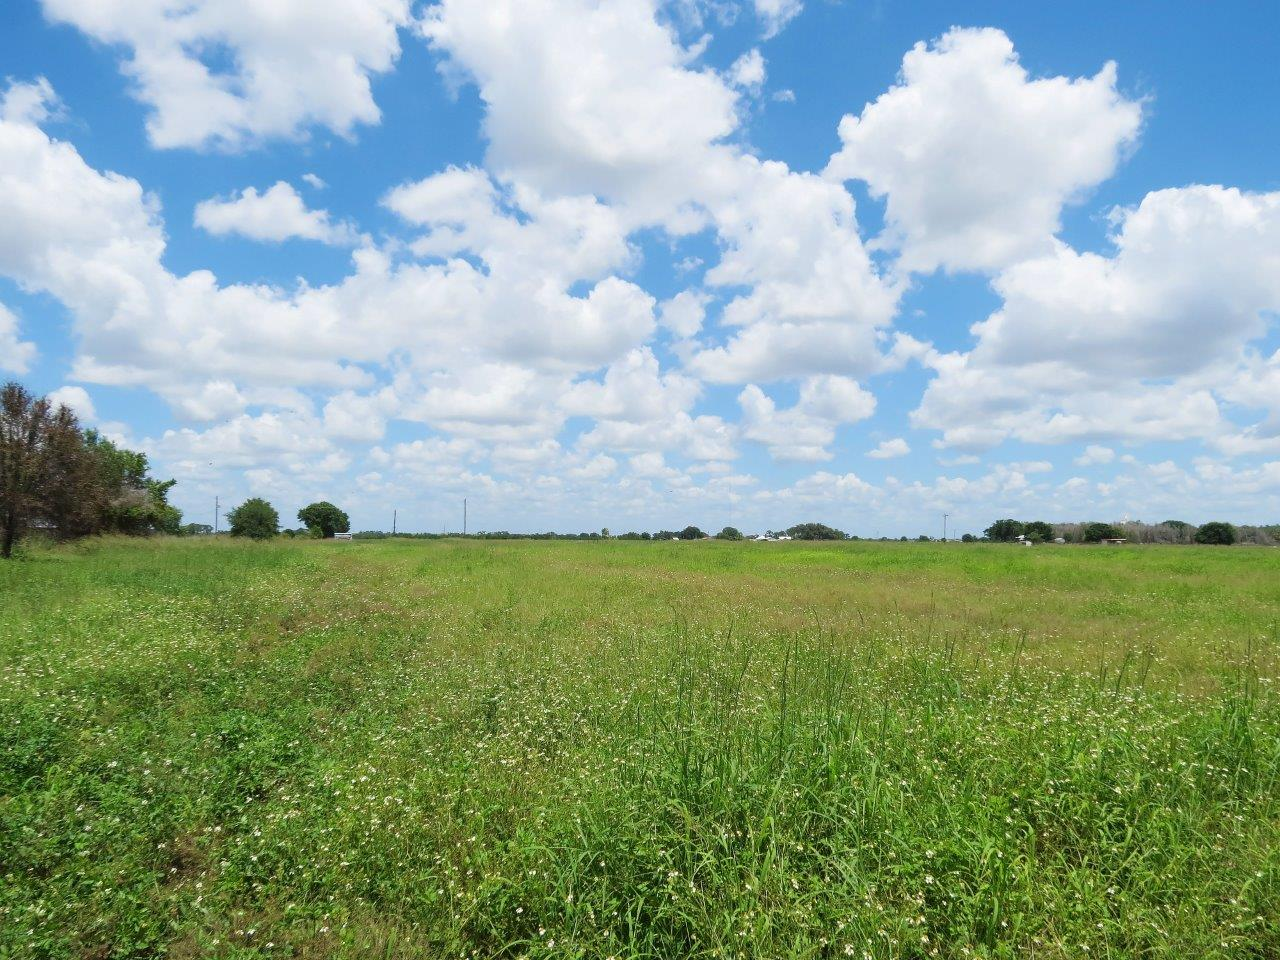 Albritton Road Two 7.5 Acre Country Homesites in Parrish, Florida